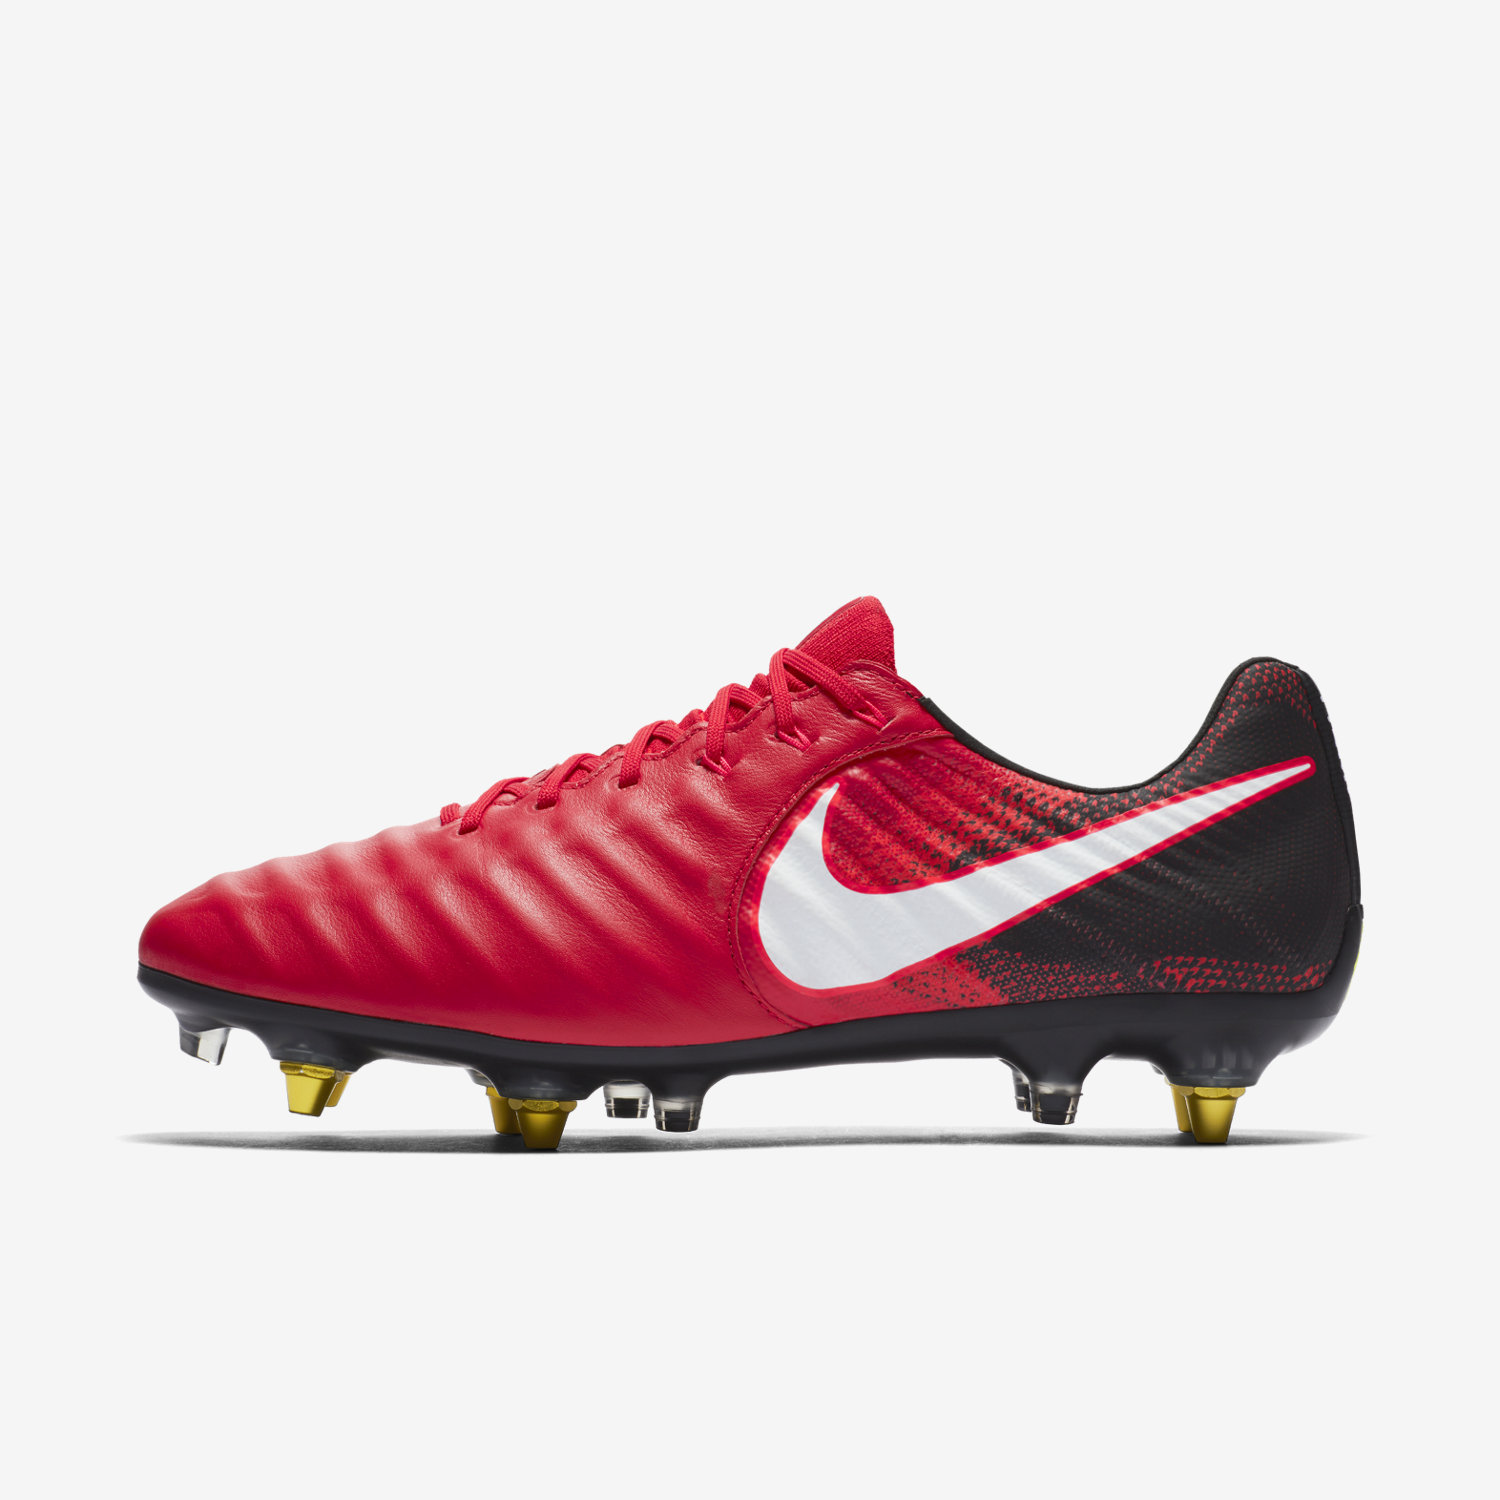 Nike Tiempo Legend VII AG-PRO Artificial-Grass Men's Football Boots Red/Black/White uT2769F